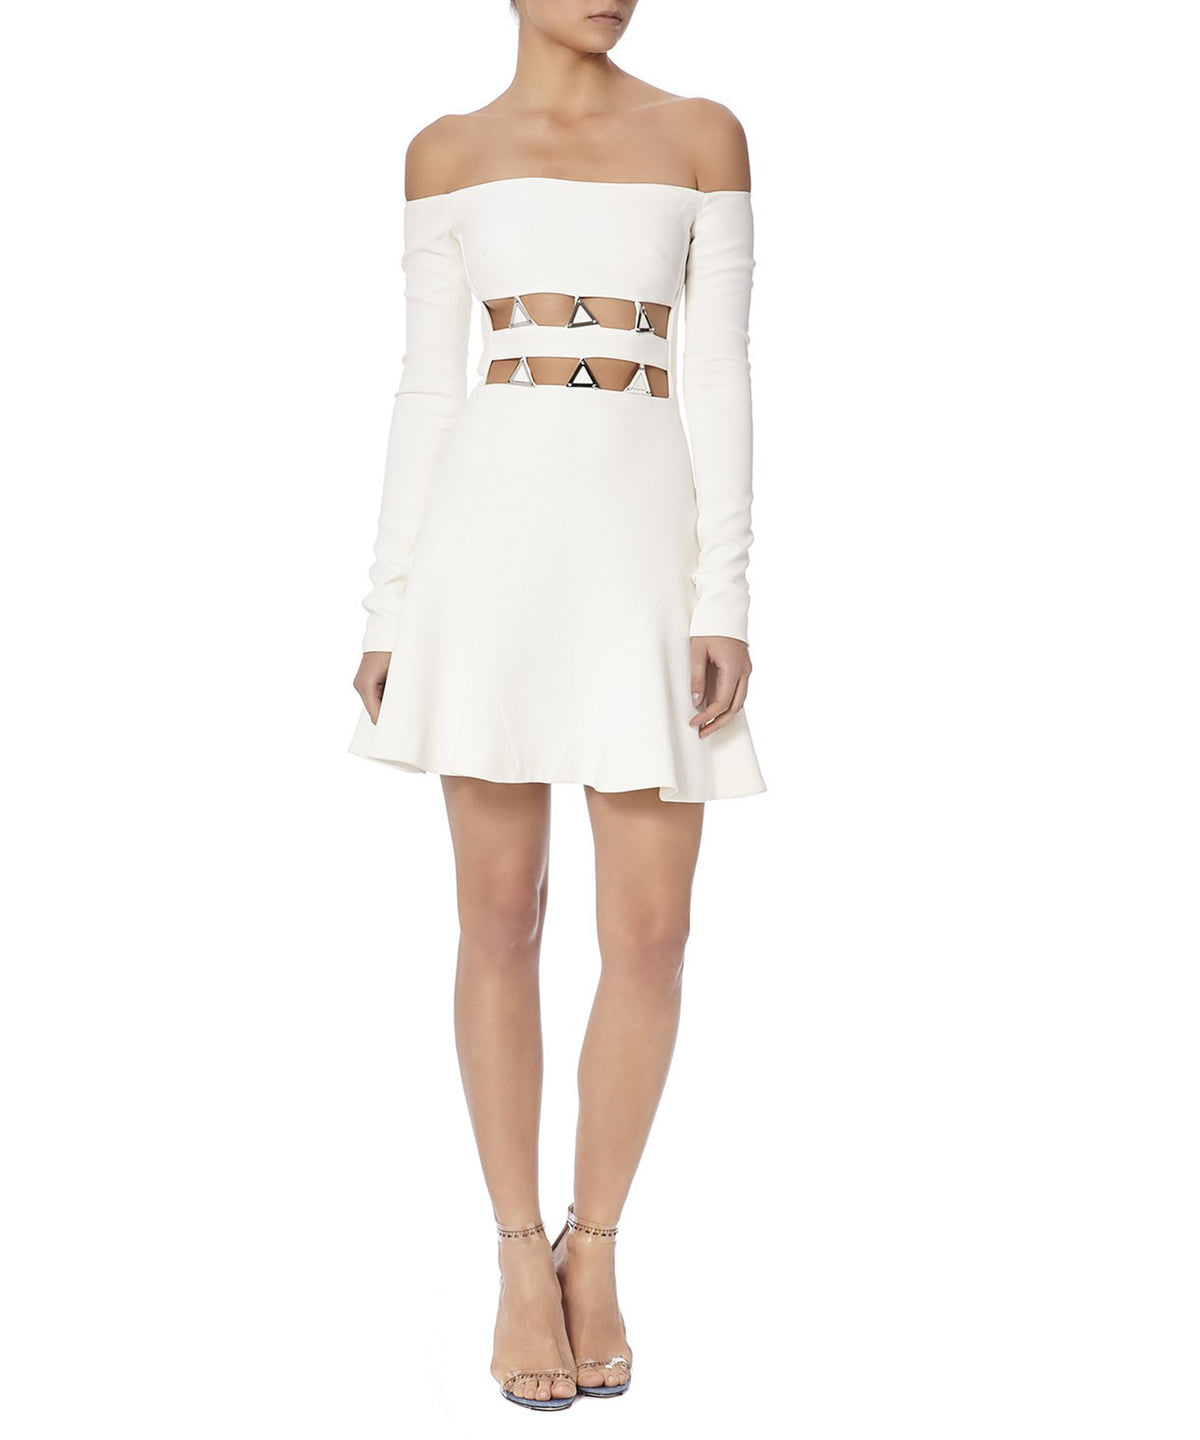 METAL EMBROIDERED DRESS WITH CUT OUTS - FONT VIEW - THE BOX BOUTIQUE